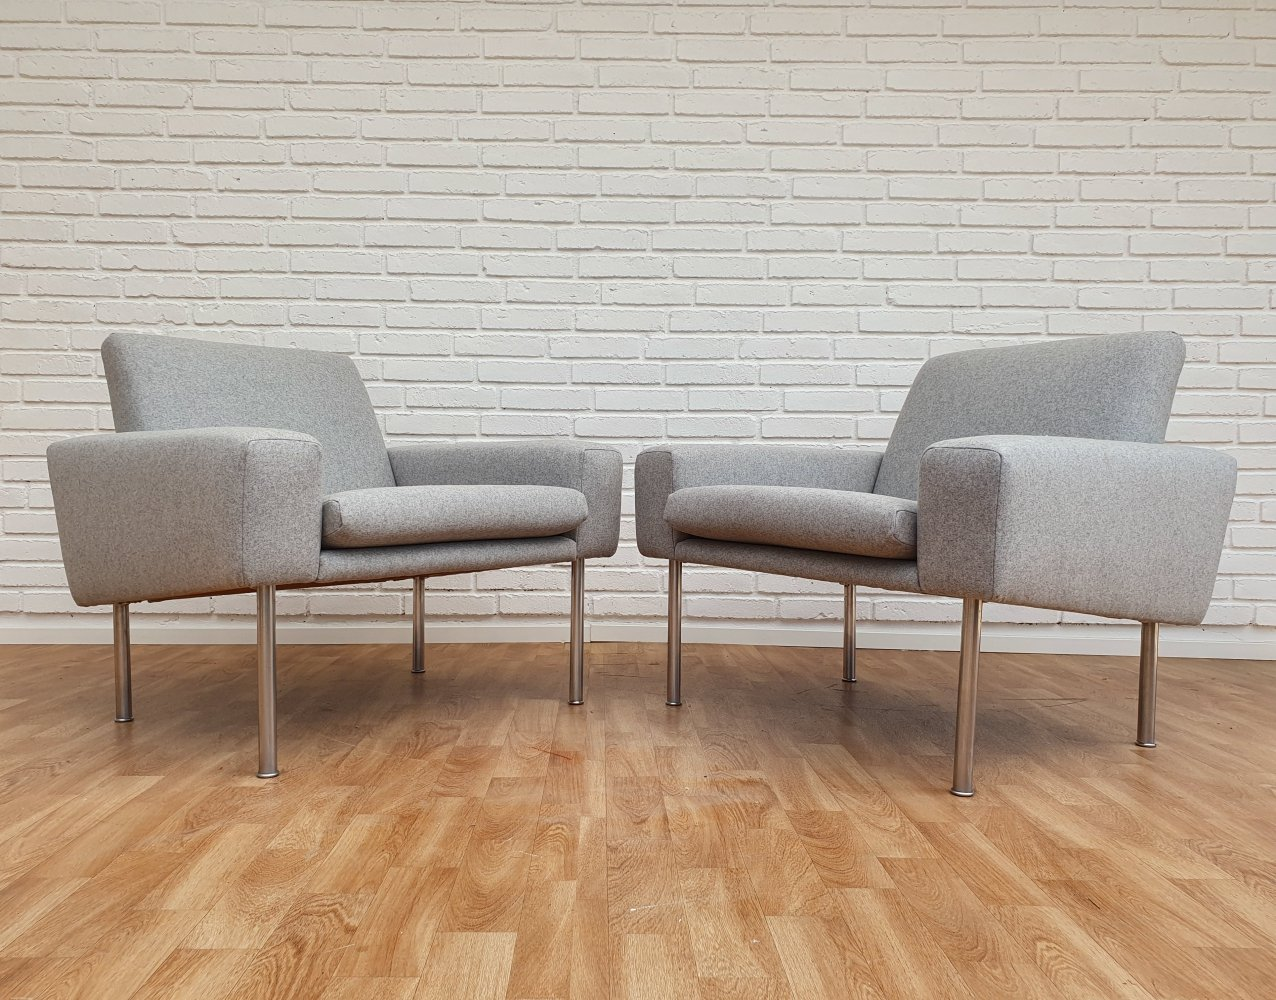 Pair of Model AP 34/1 lounge chairs by Hans Wegner for AP Stolen, 1960s